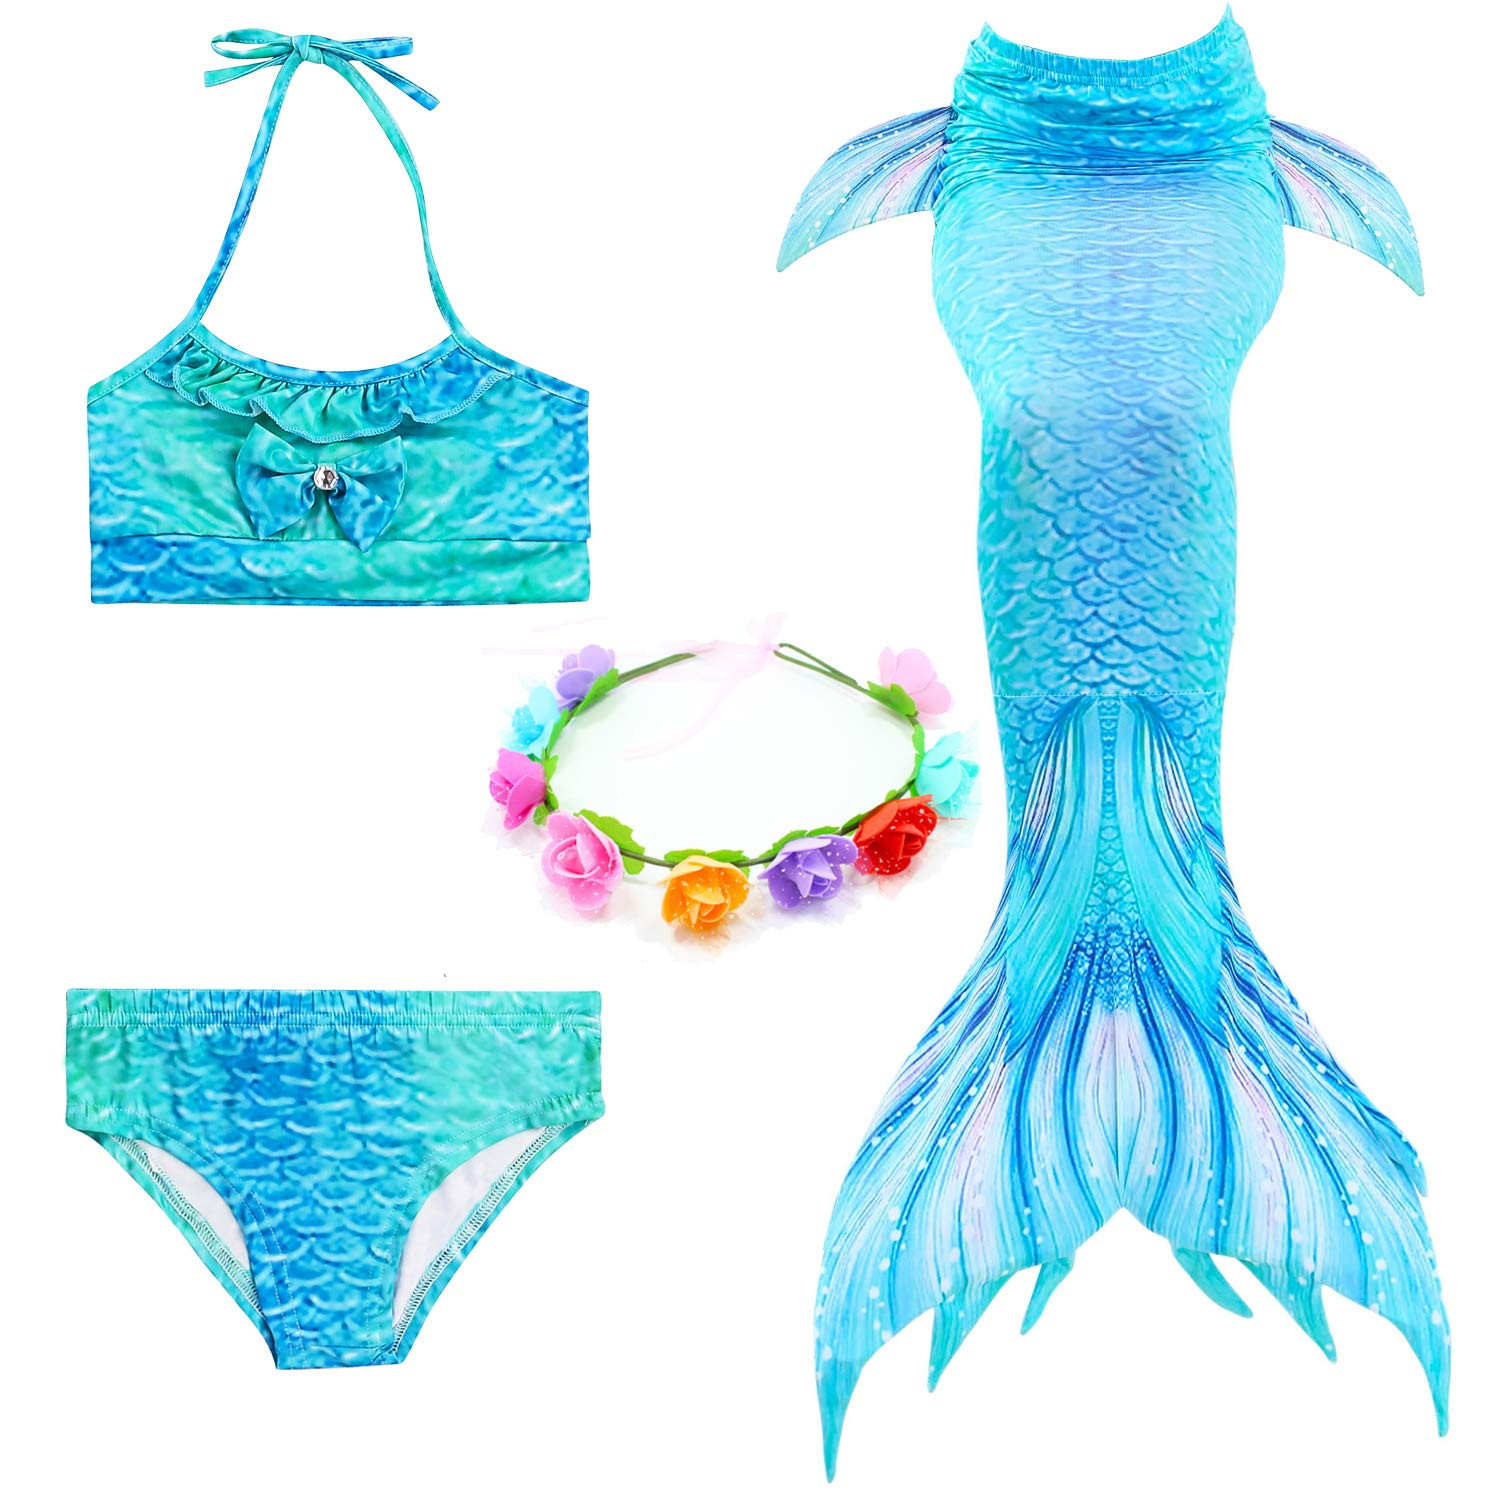 Bechampion Kids Girls Swimsuits Bikini Swimmable Mermaid Tails Swimwear for Swimming for Summer Pool Costumes